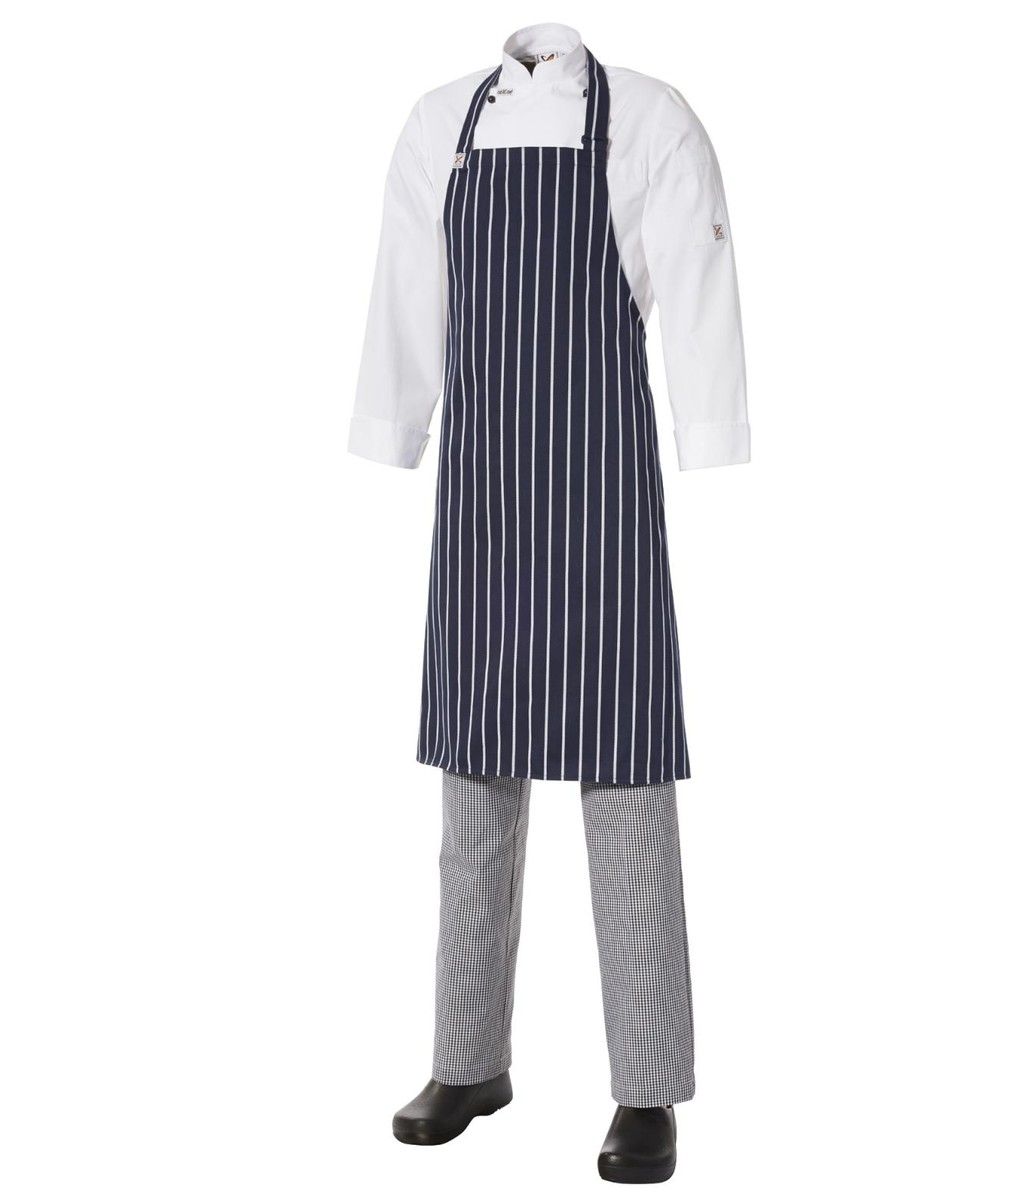 5 for the price of 4: Bib Apron Pinstripe - Medium - Navy/White by Club Chef